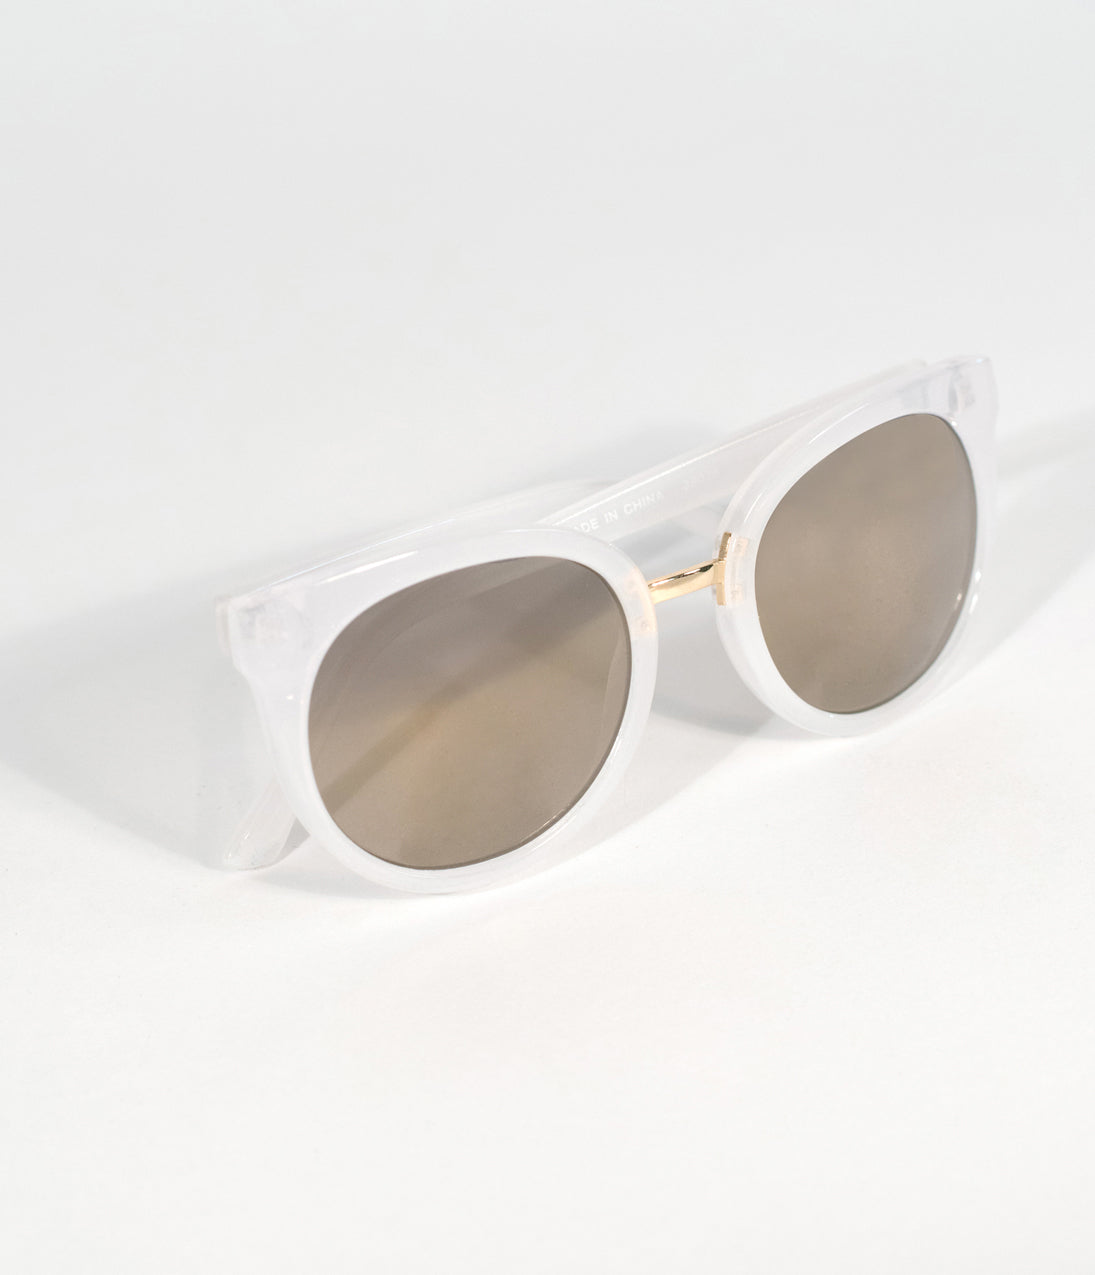 1950s Sunglasses & 50s Glasses | Retro Cat Eye Sunglasses Frosted White Opaque Cat Eye Sunglasses $18.00 AT vintagedancer.com